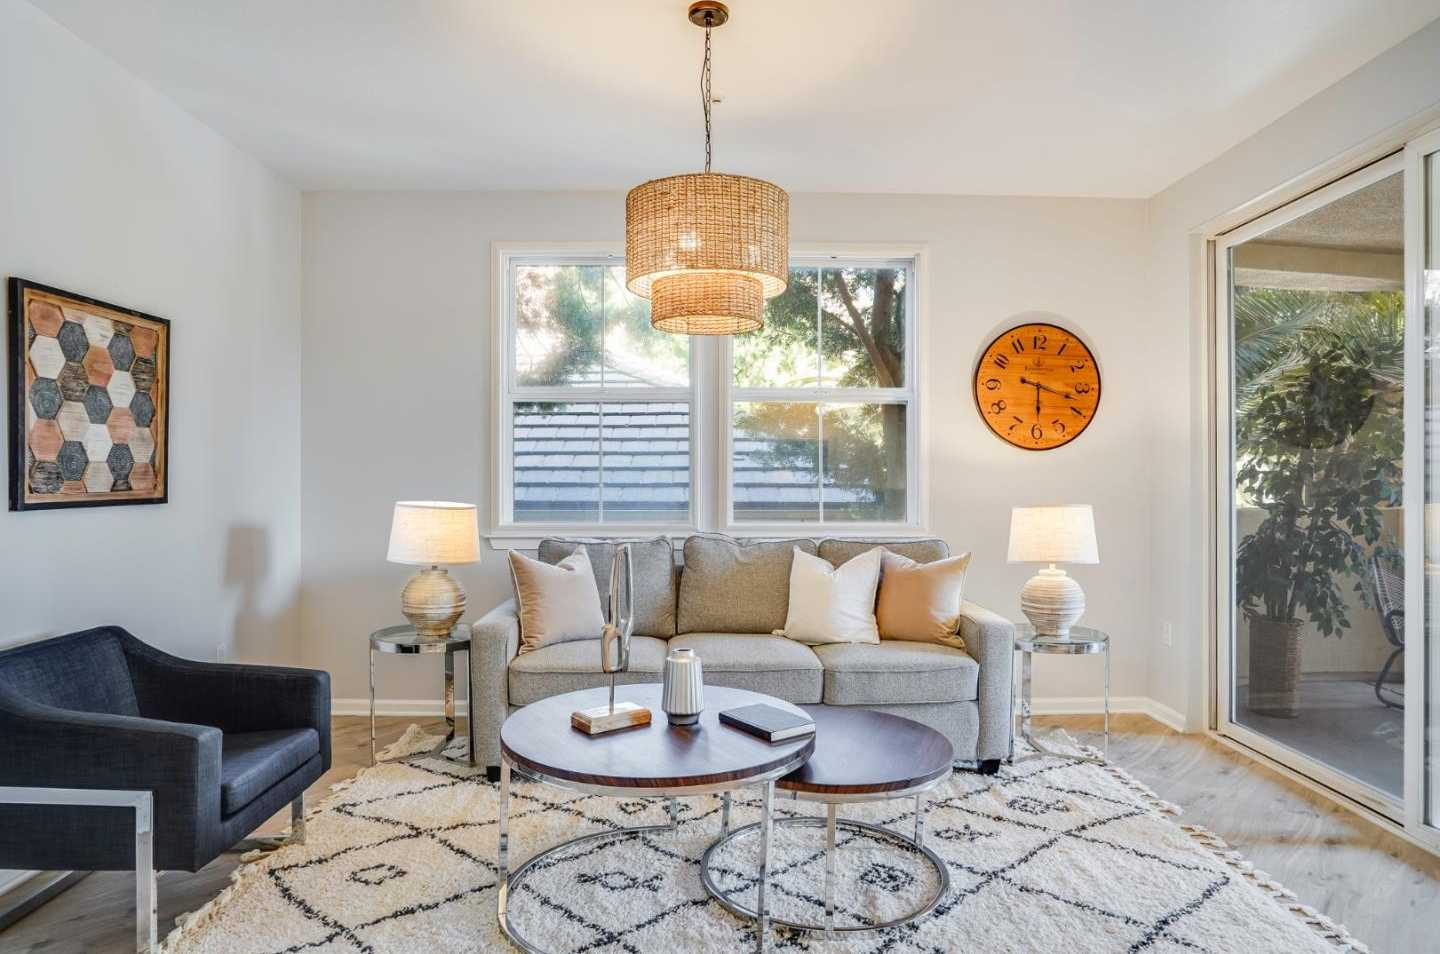 $900,000 - 3Br/2Ba -  for Sale in San Jose